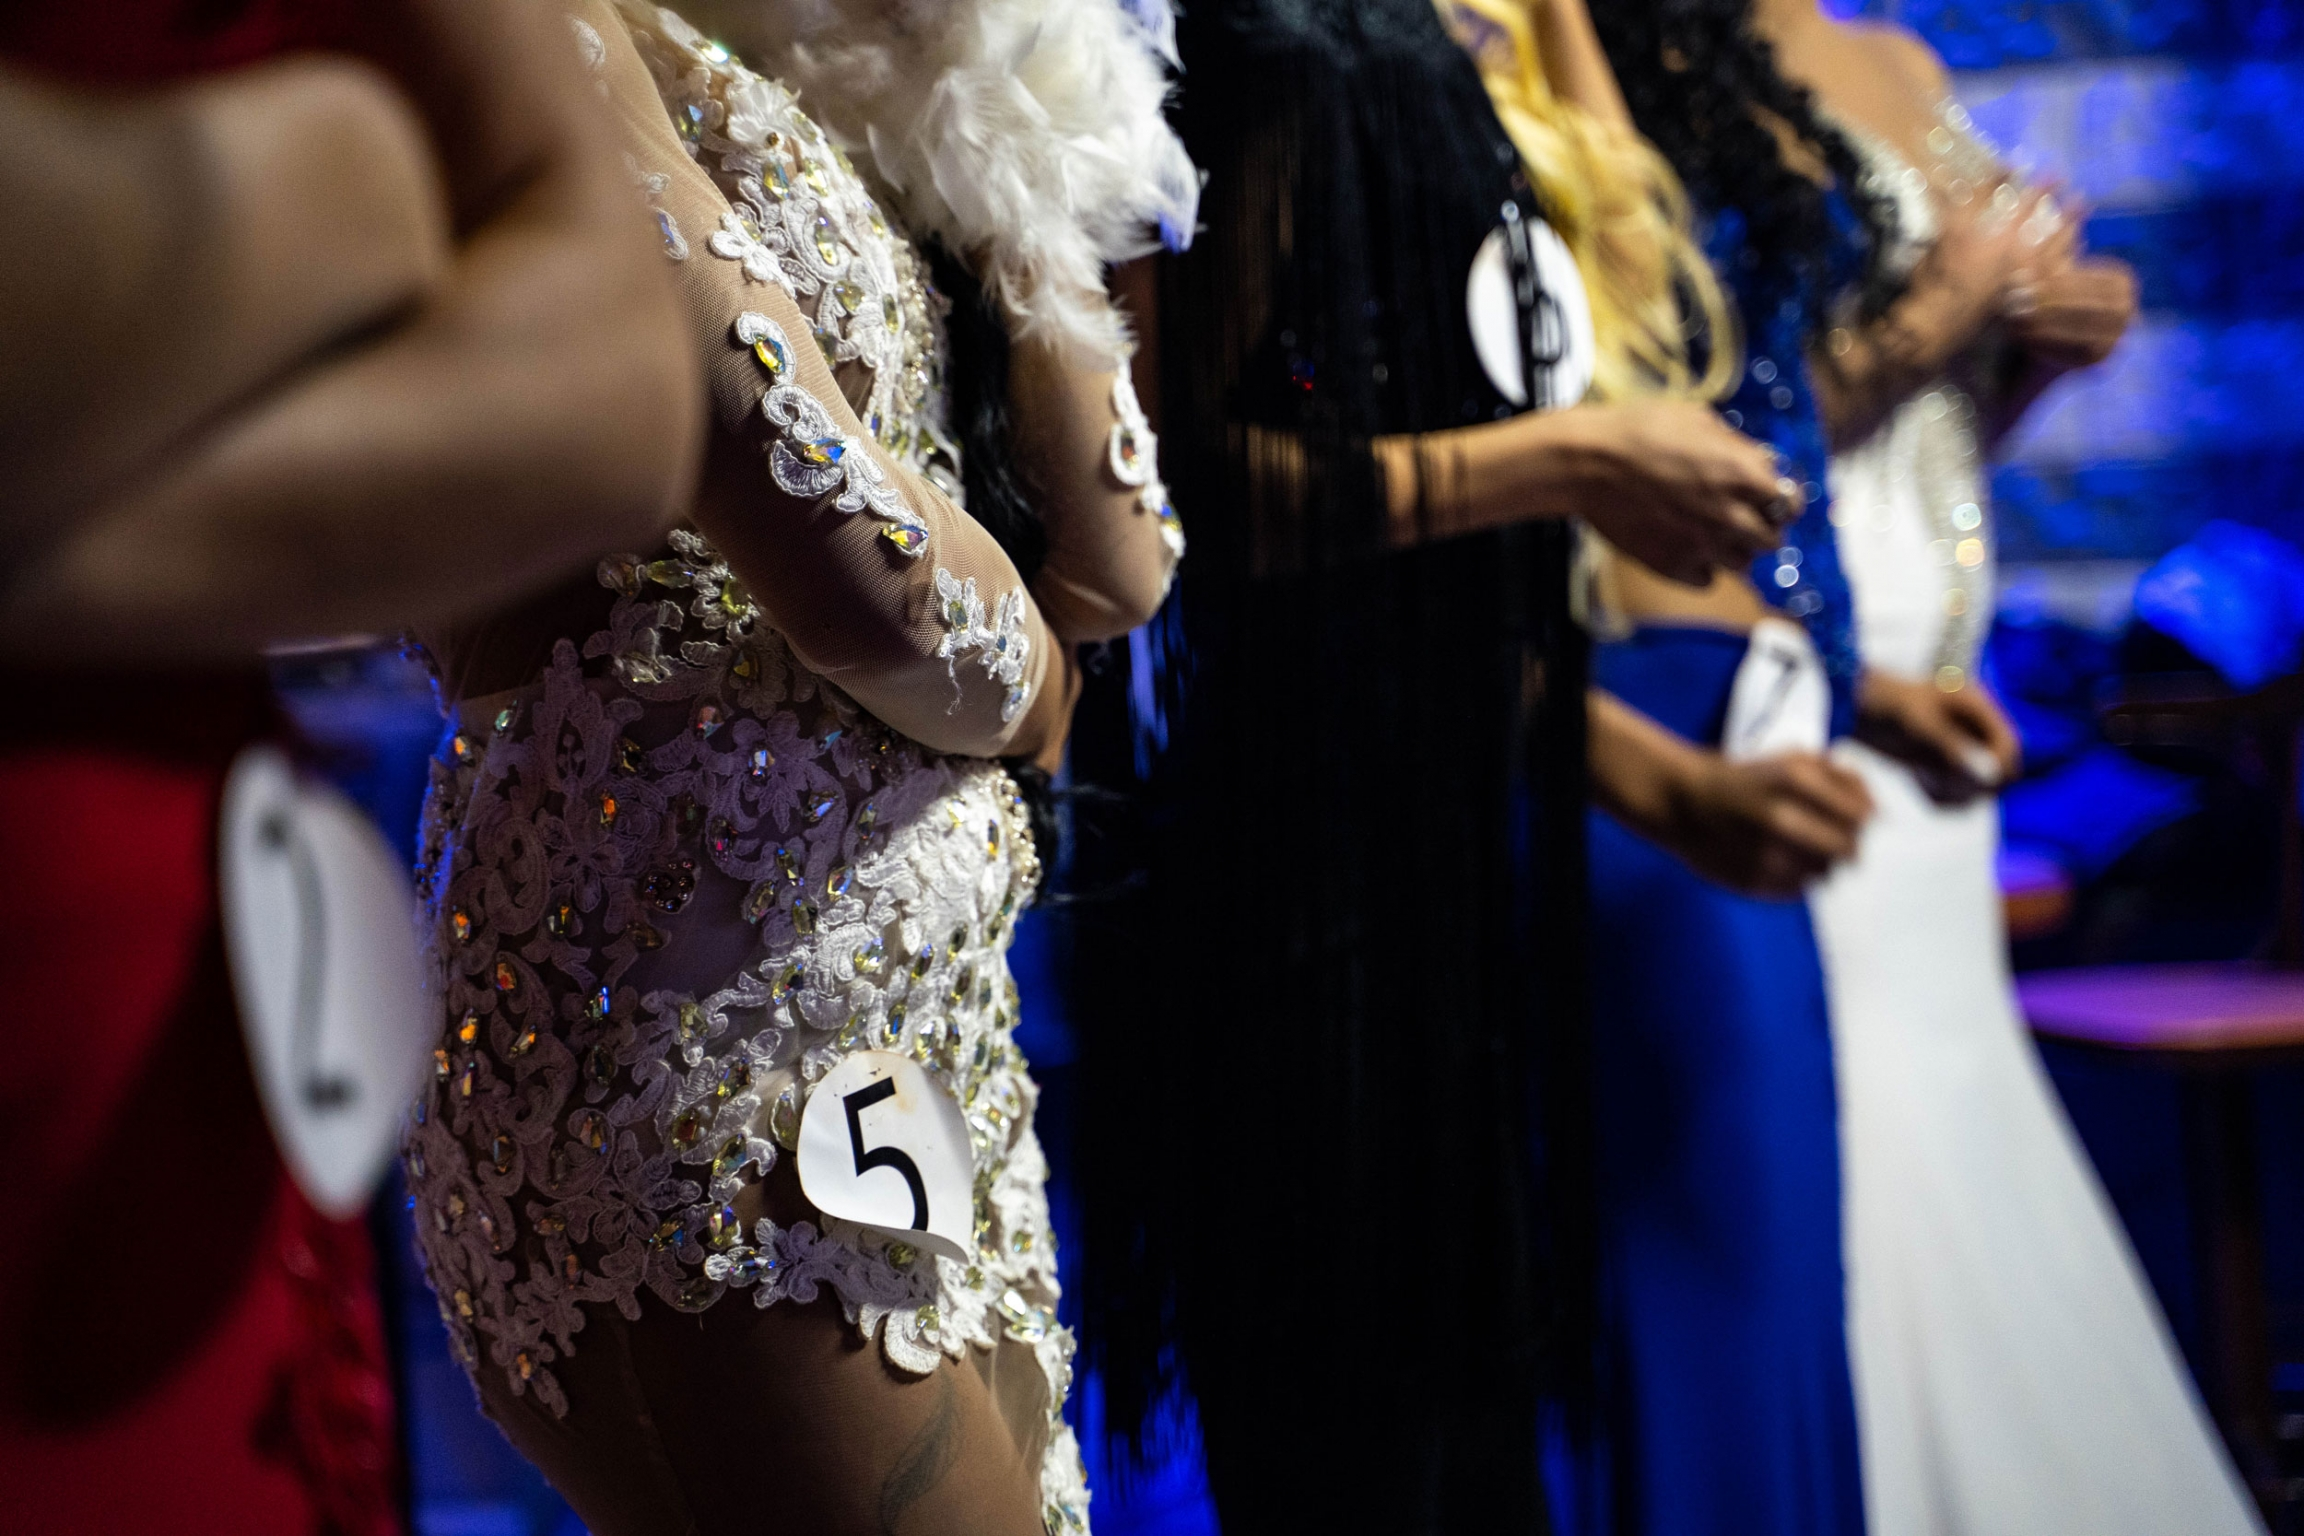 Several transgender women are shown standing side by side with numbers attached to their dresses.